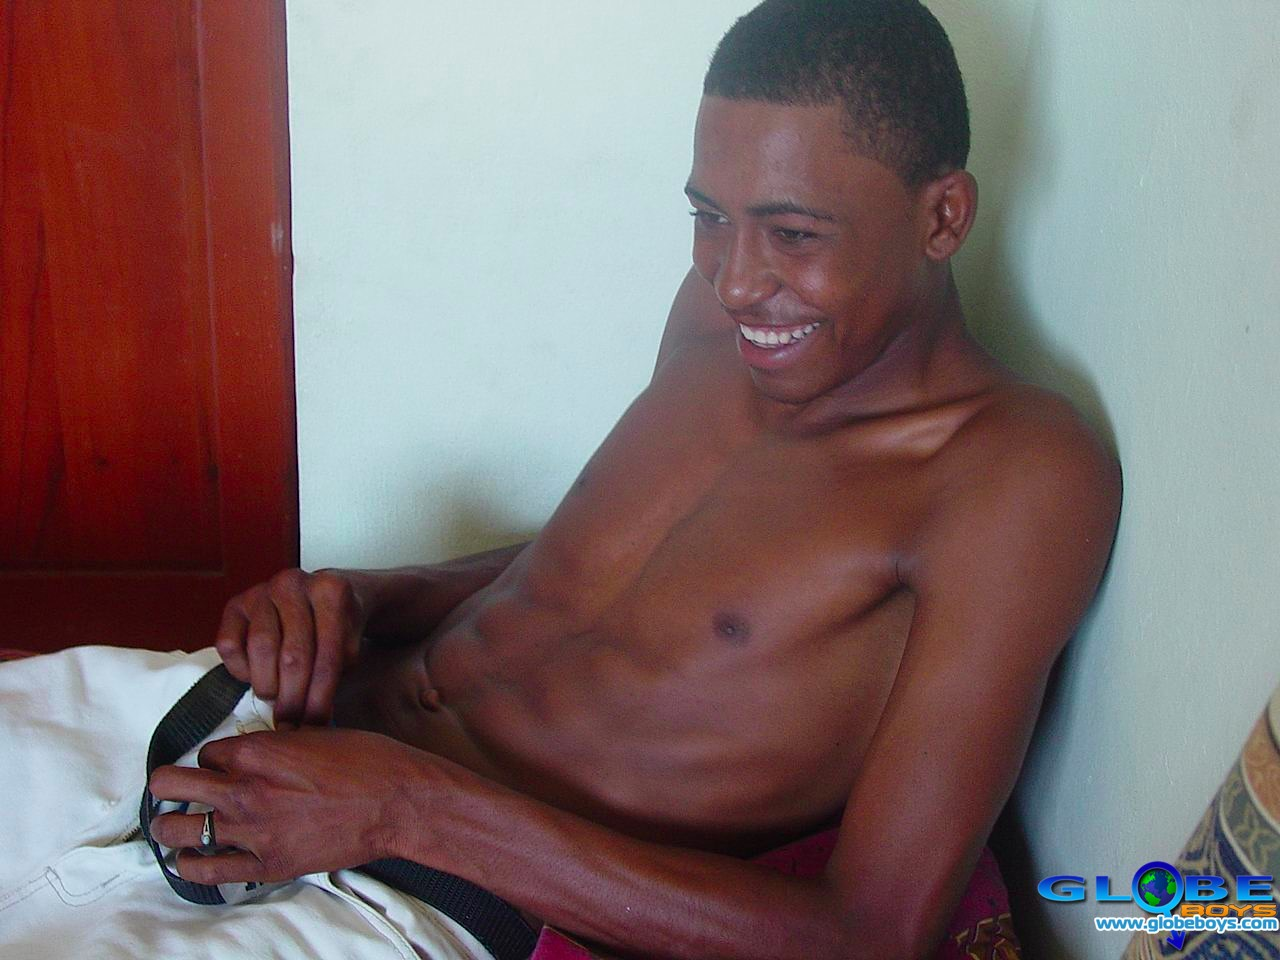 Black gay twinks photos and stories wanked 4